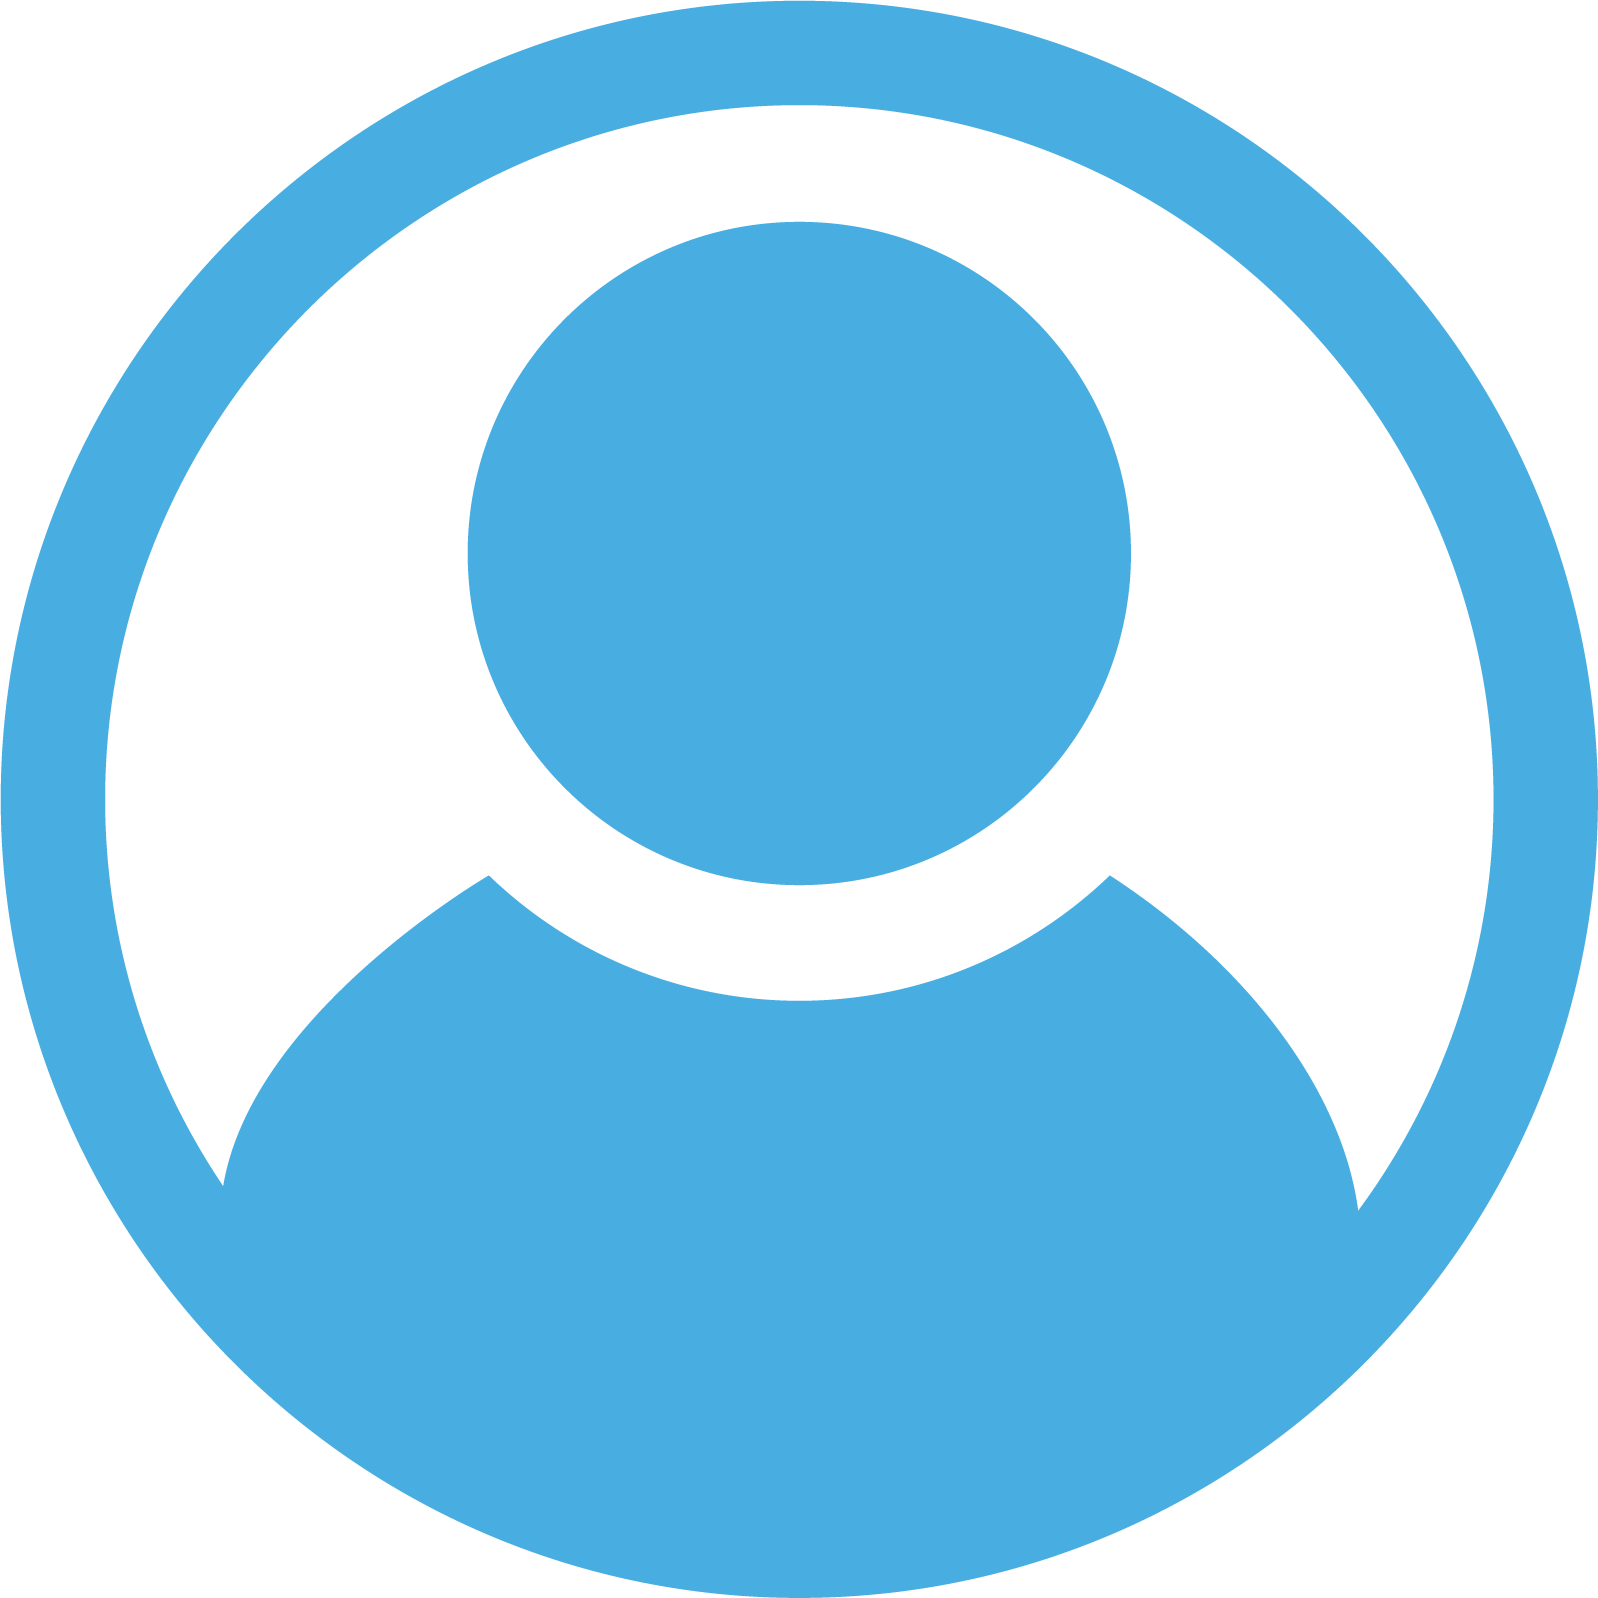 Person in a circle logo